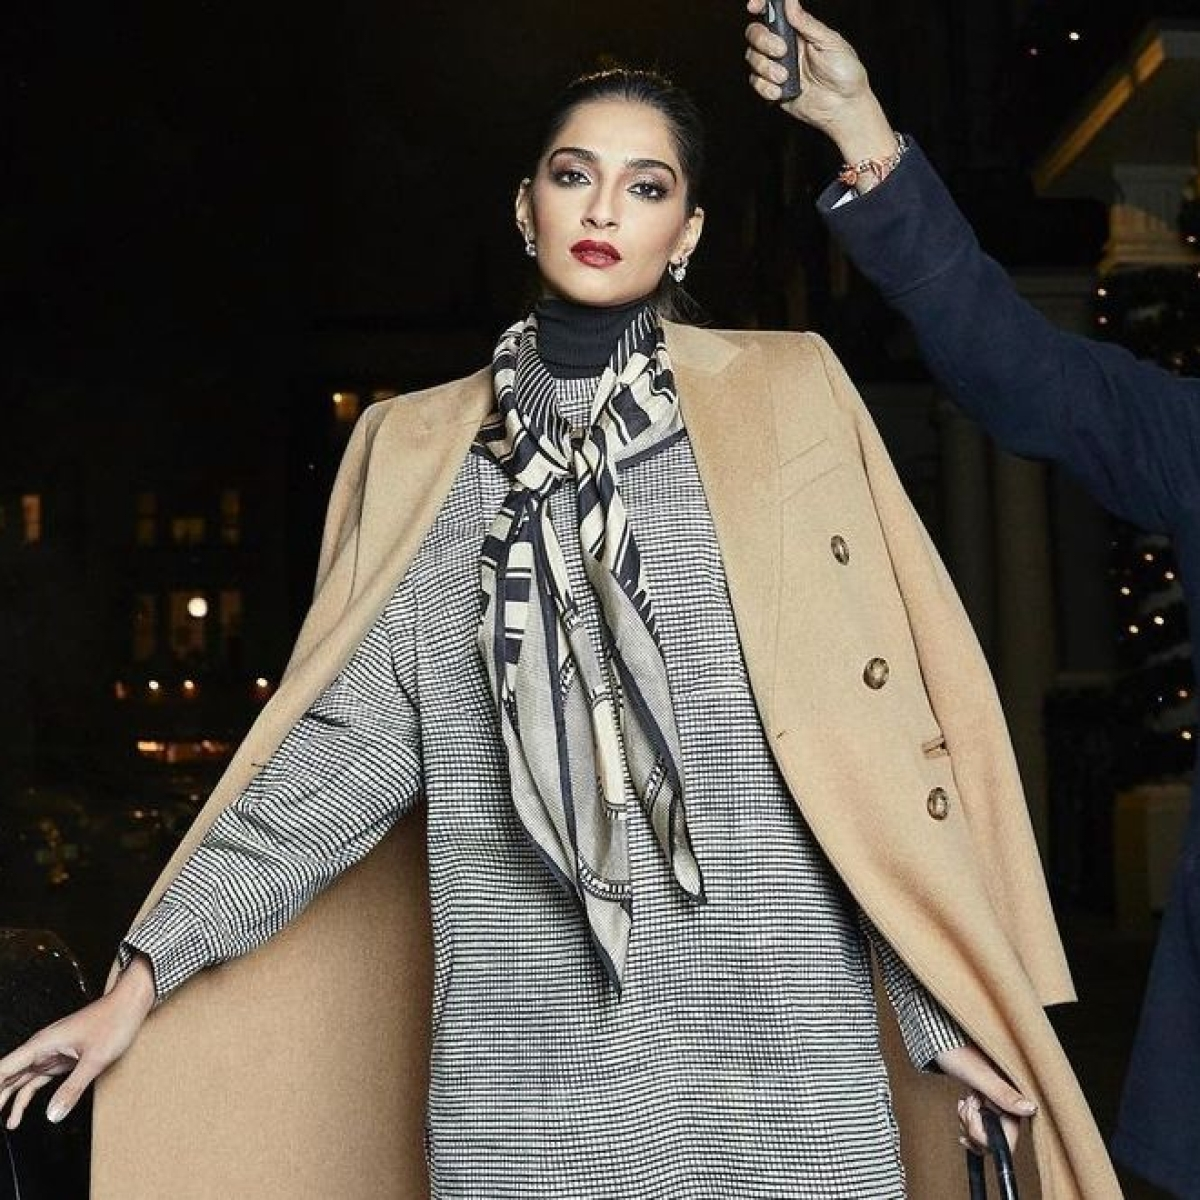 Why did Sonam Kapoor apologize to singer Rihanna on Instagram?